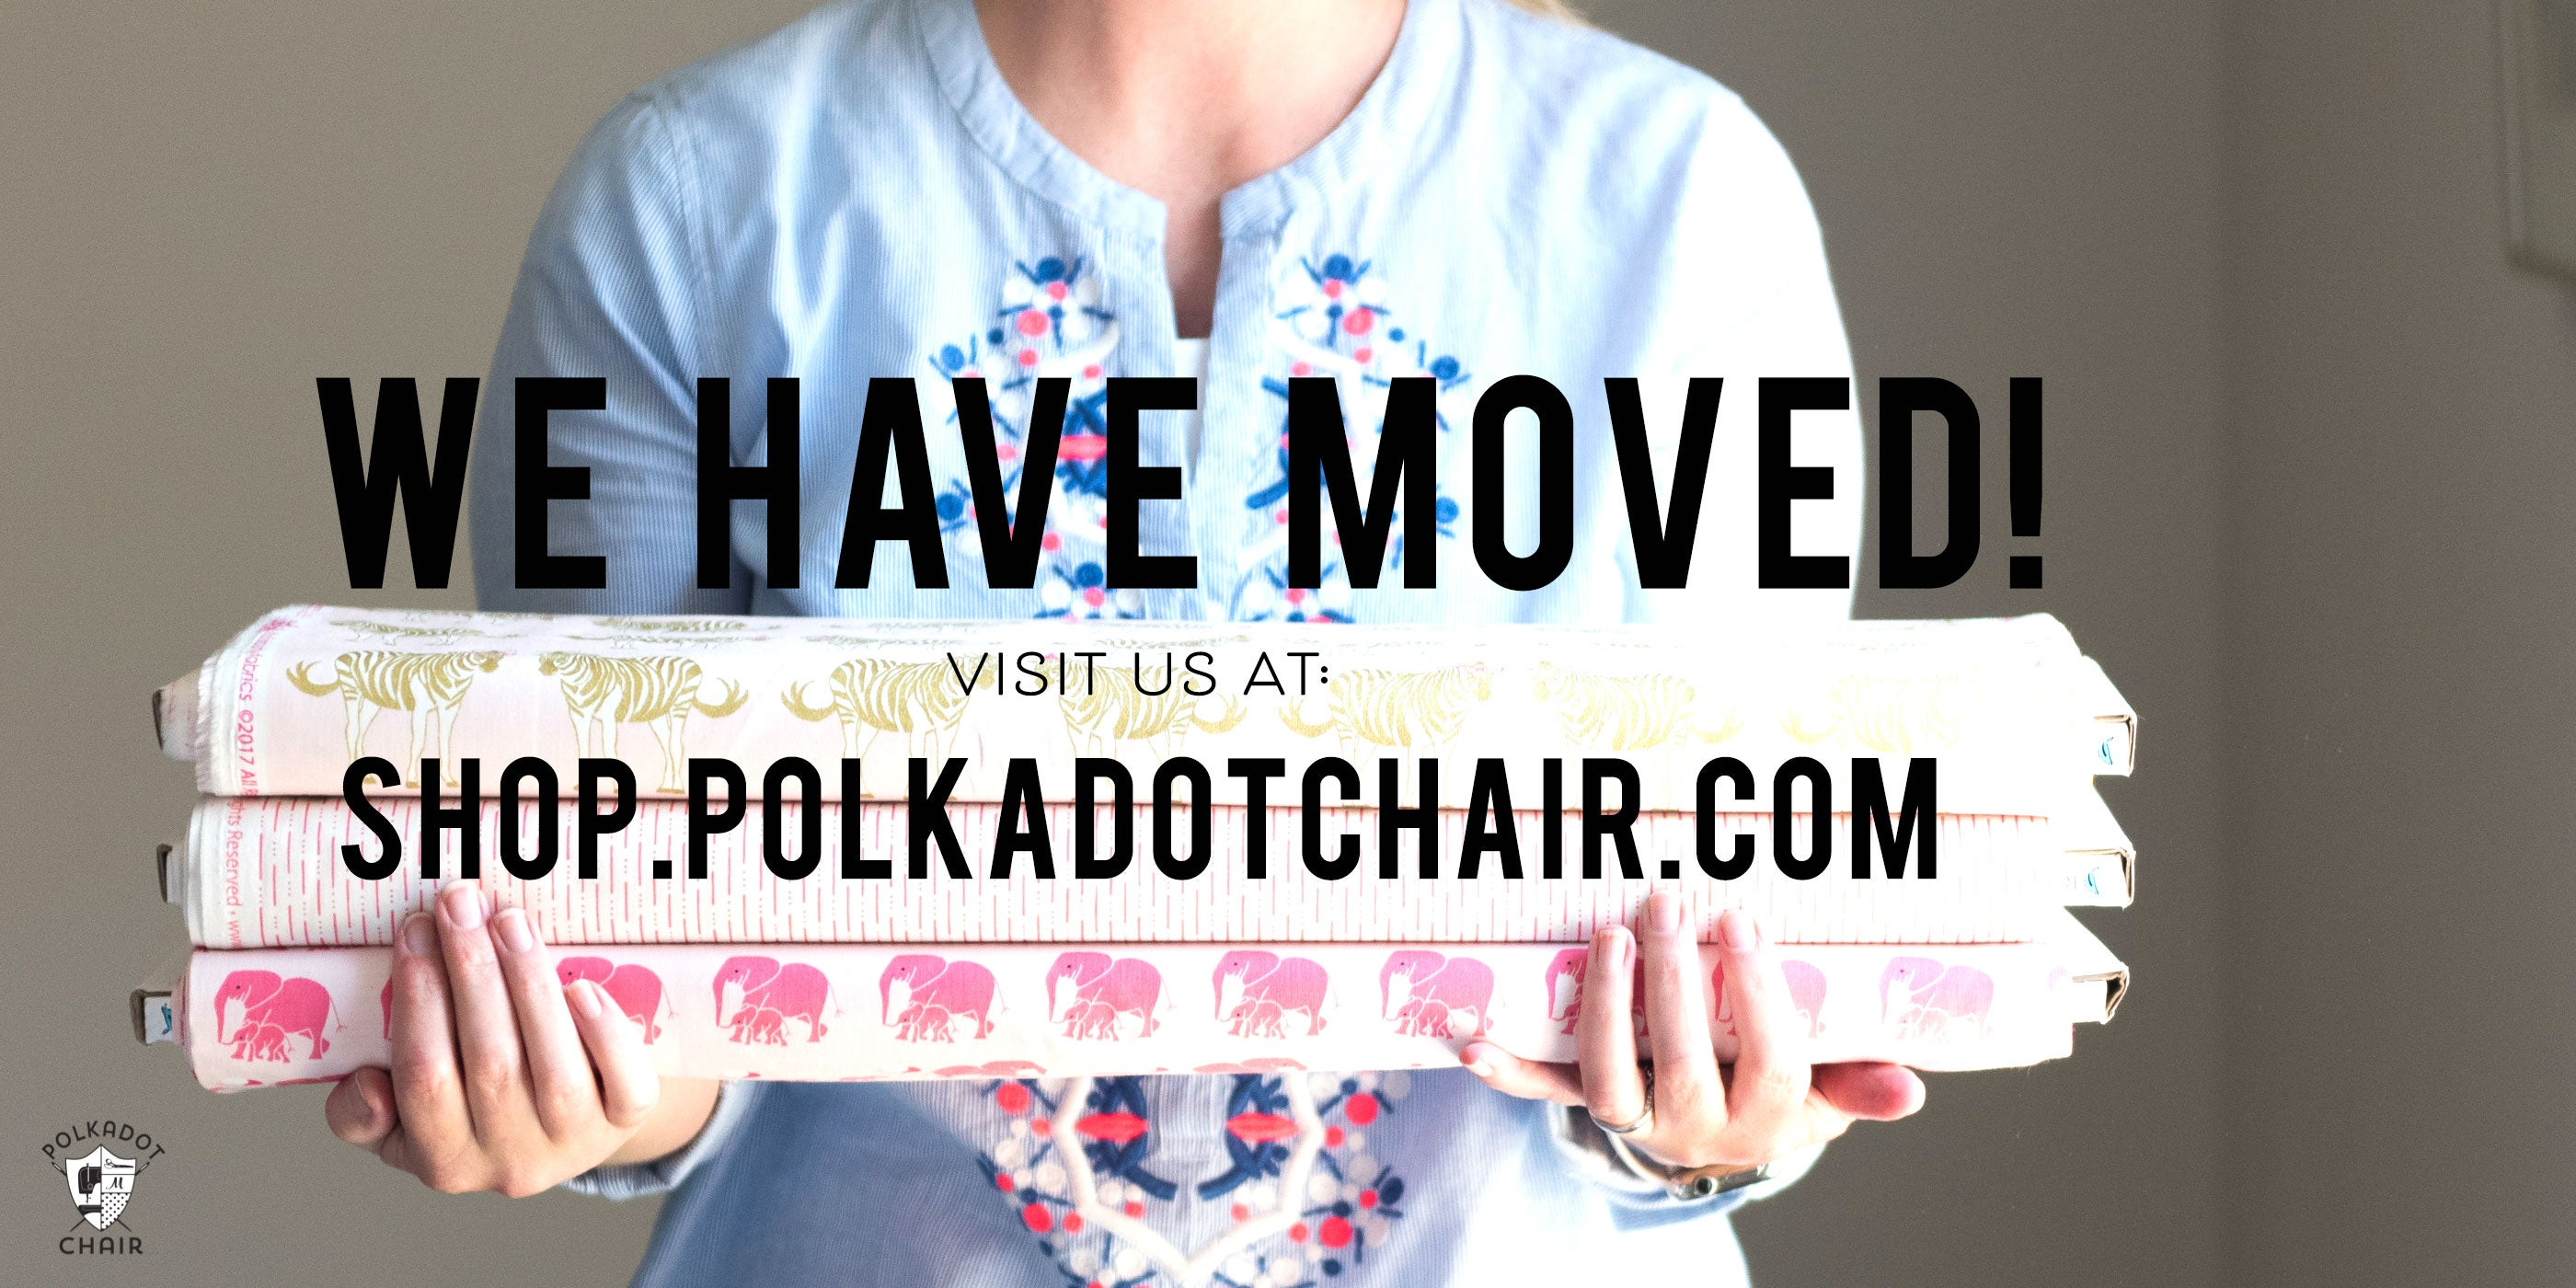 POLKADOTCHAIR.COM. Shop Products